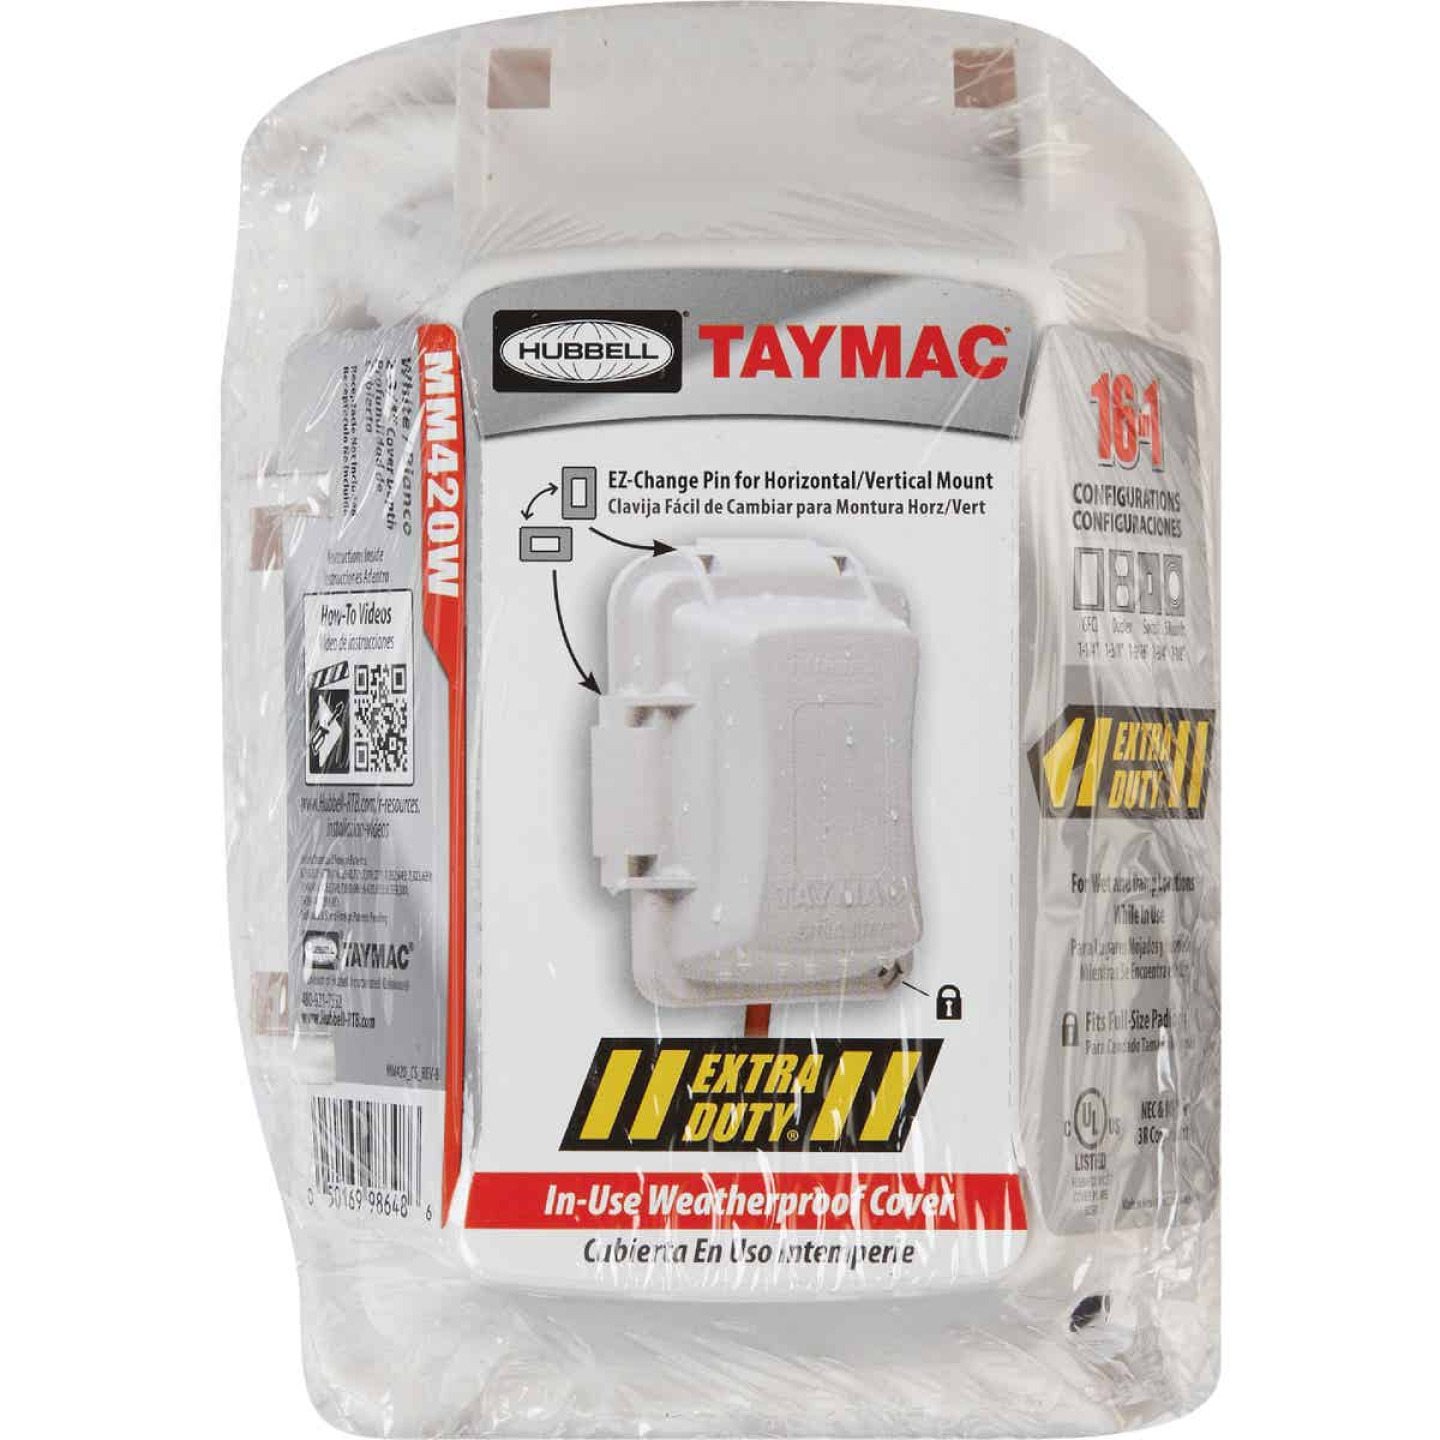 TayMac Extra Duty Single Gang Vertical/Horizontal Mount Polycarbonate White In-Use Outdoor Outlet Cover Image 2